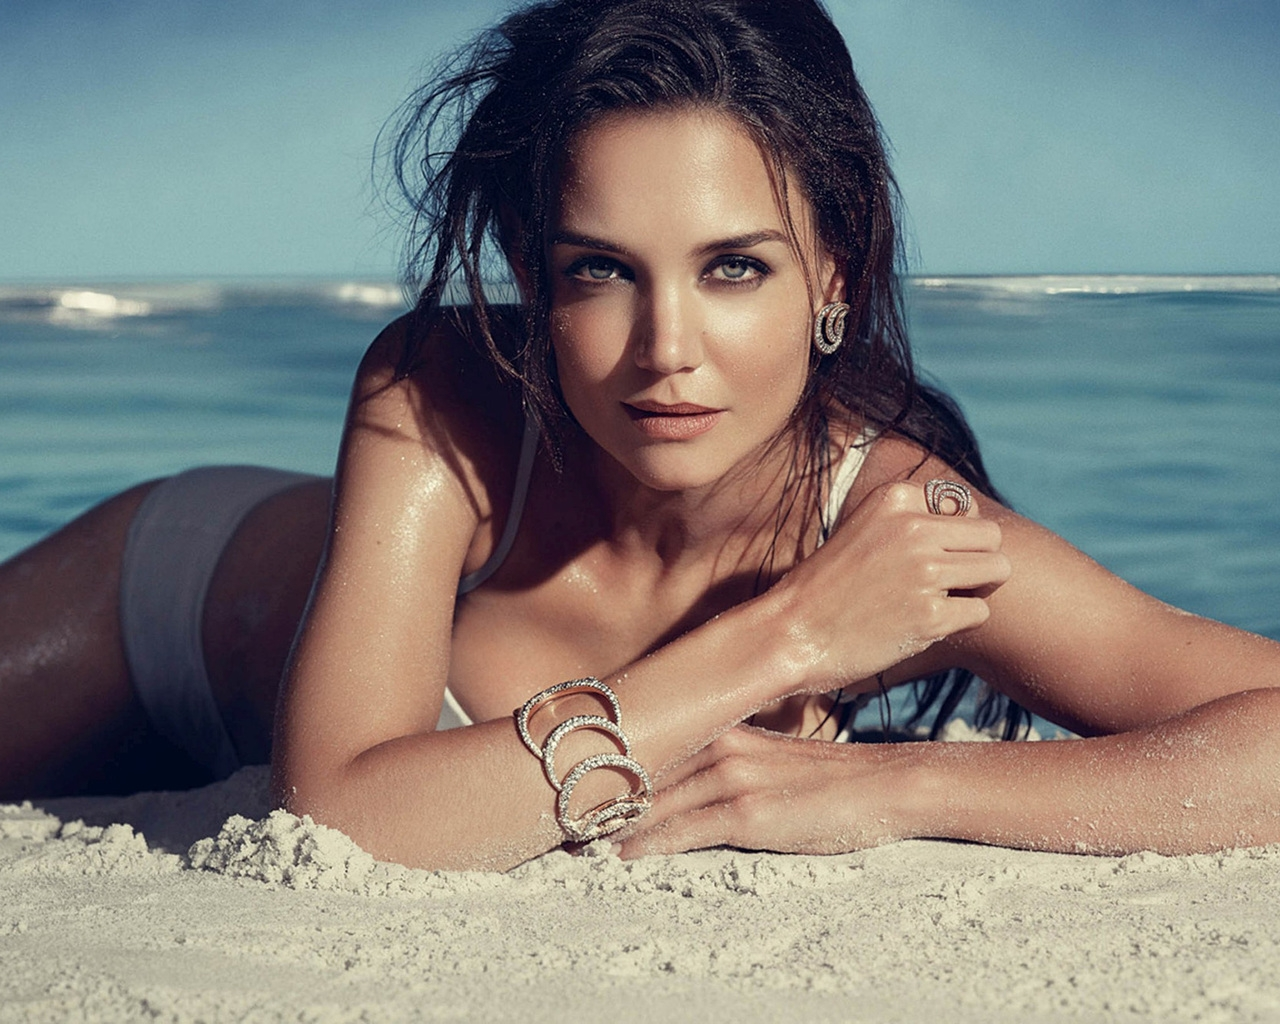 Katie Holmes Seaside for 1280 x 1024 resolution